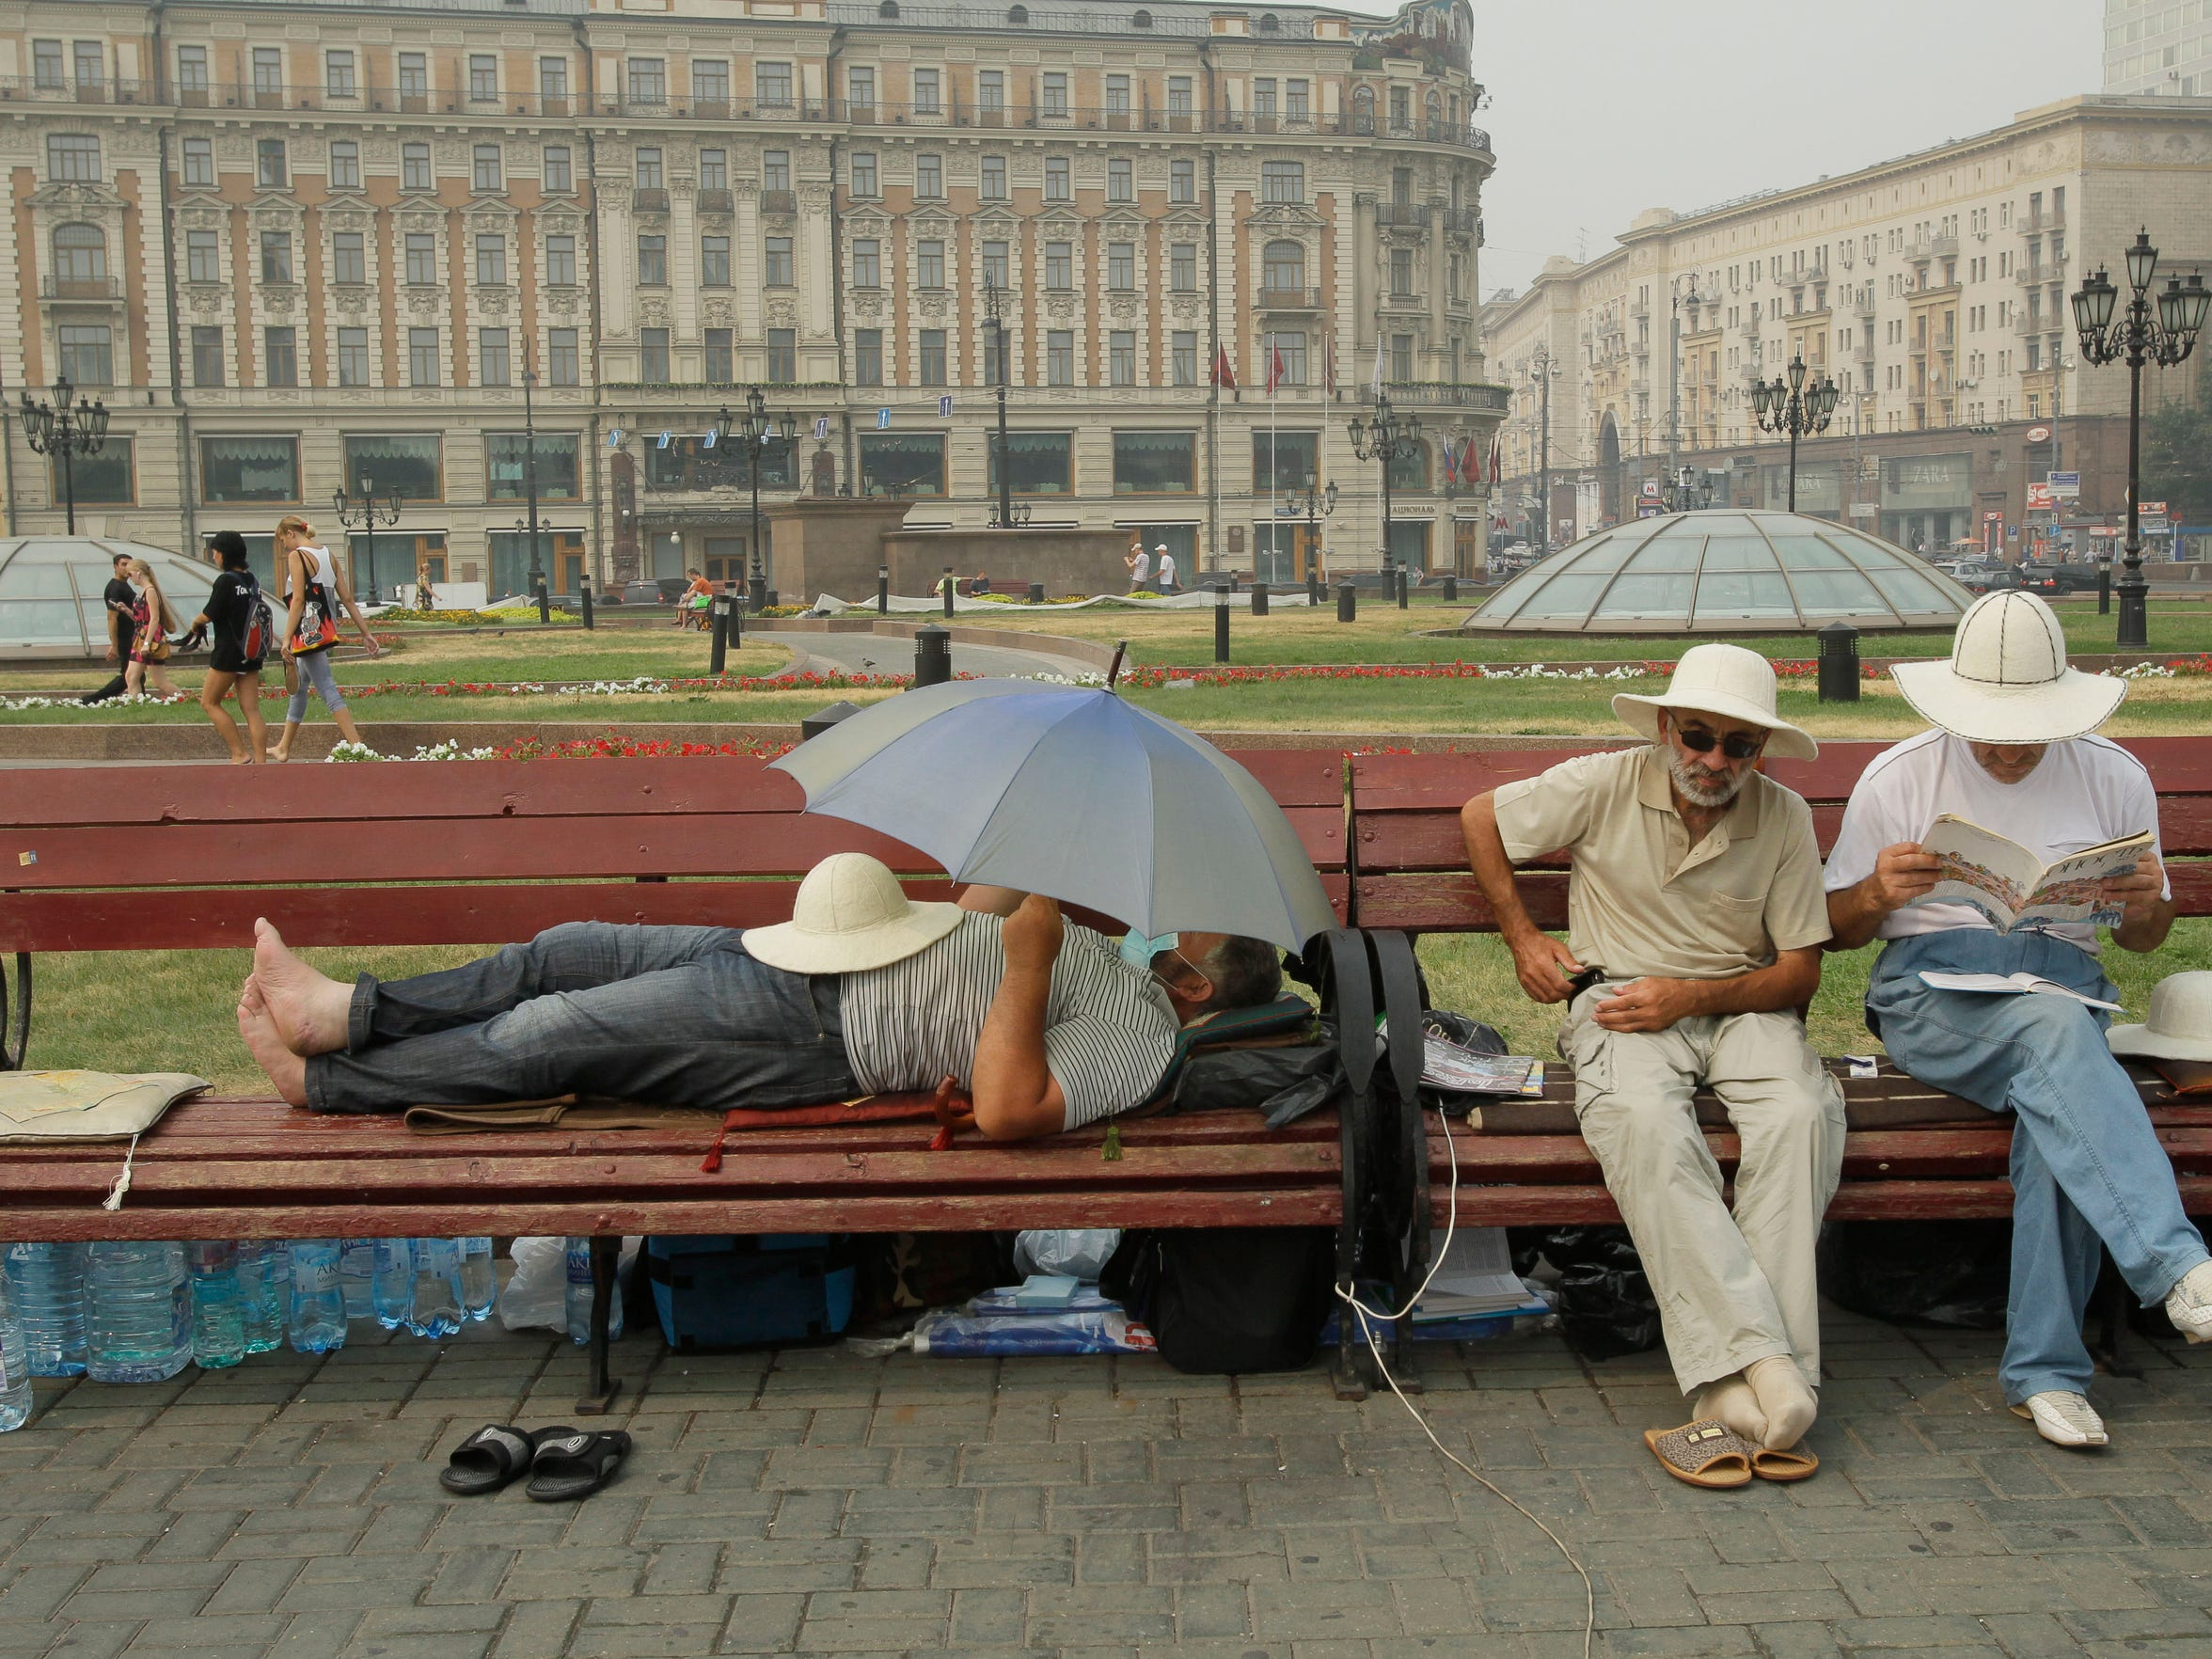 People rest at Manezhaya Square, just outside the Moscow Kremlin, on Aug. 9, 2010, enjoying a brief respite from smog due to a change in the wind direction. Deaths in Moscow doubled to an average of 700 people a day as the Russian capital was engulfed by poisonous smog from wildfires and a sweltering heat wave.